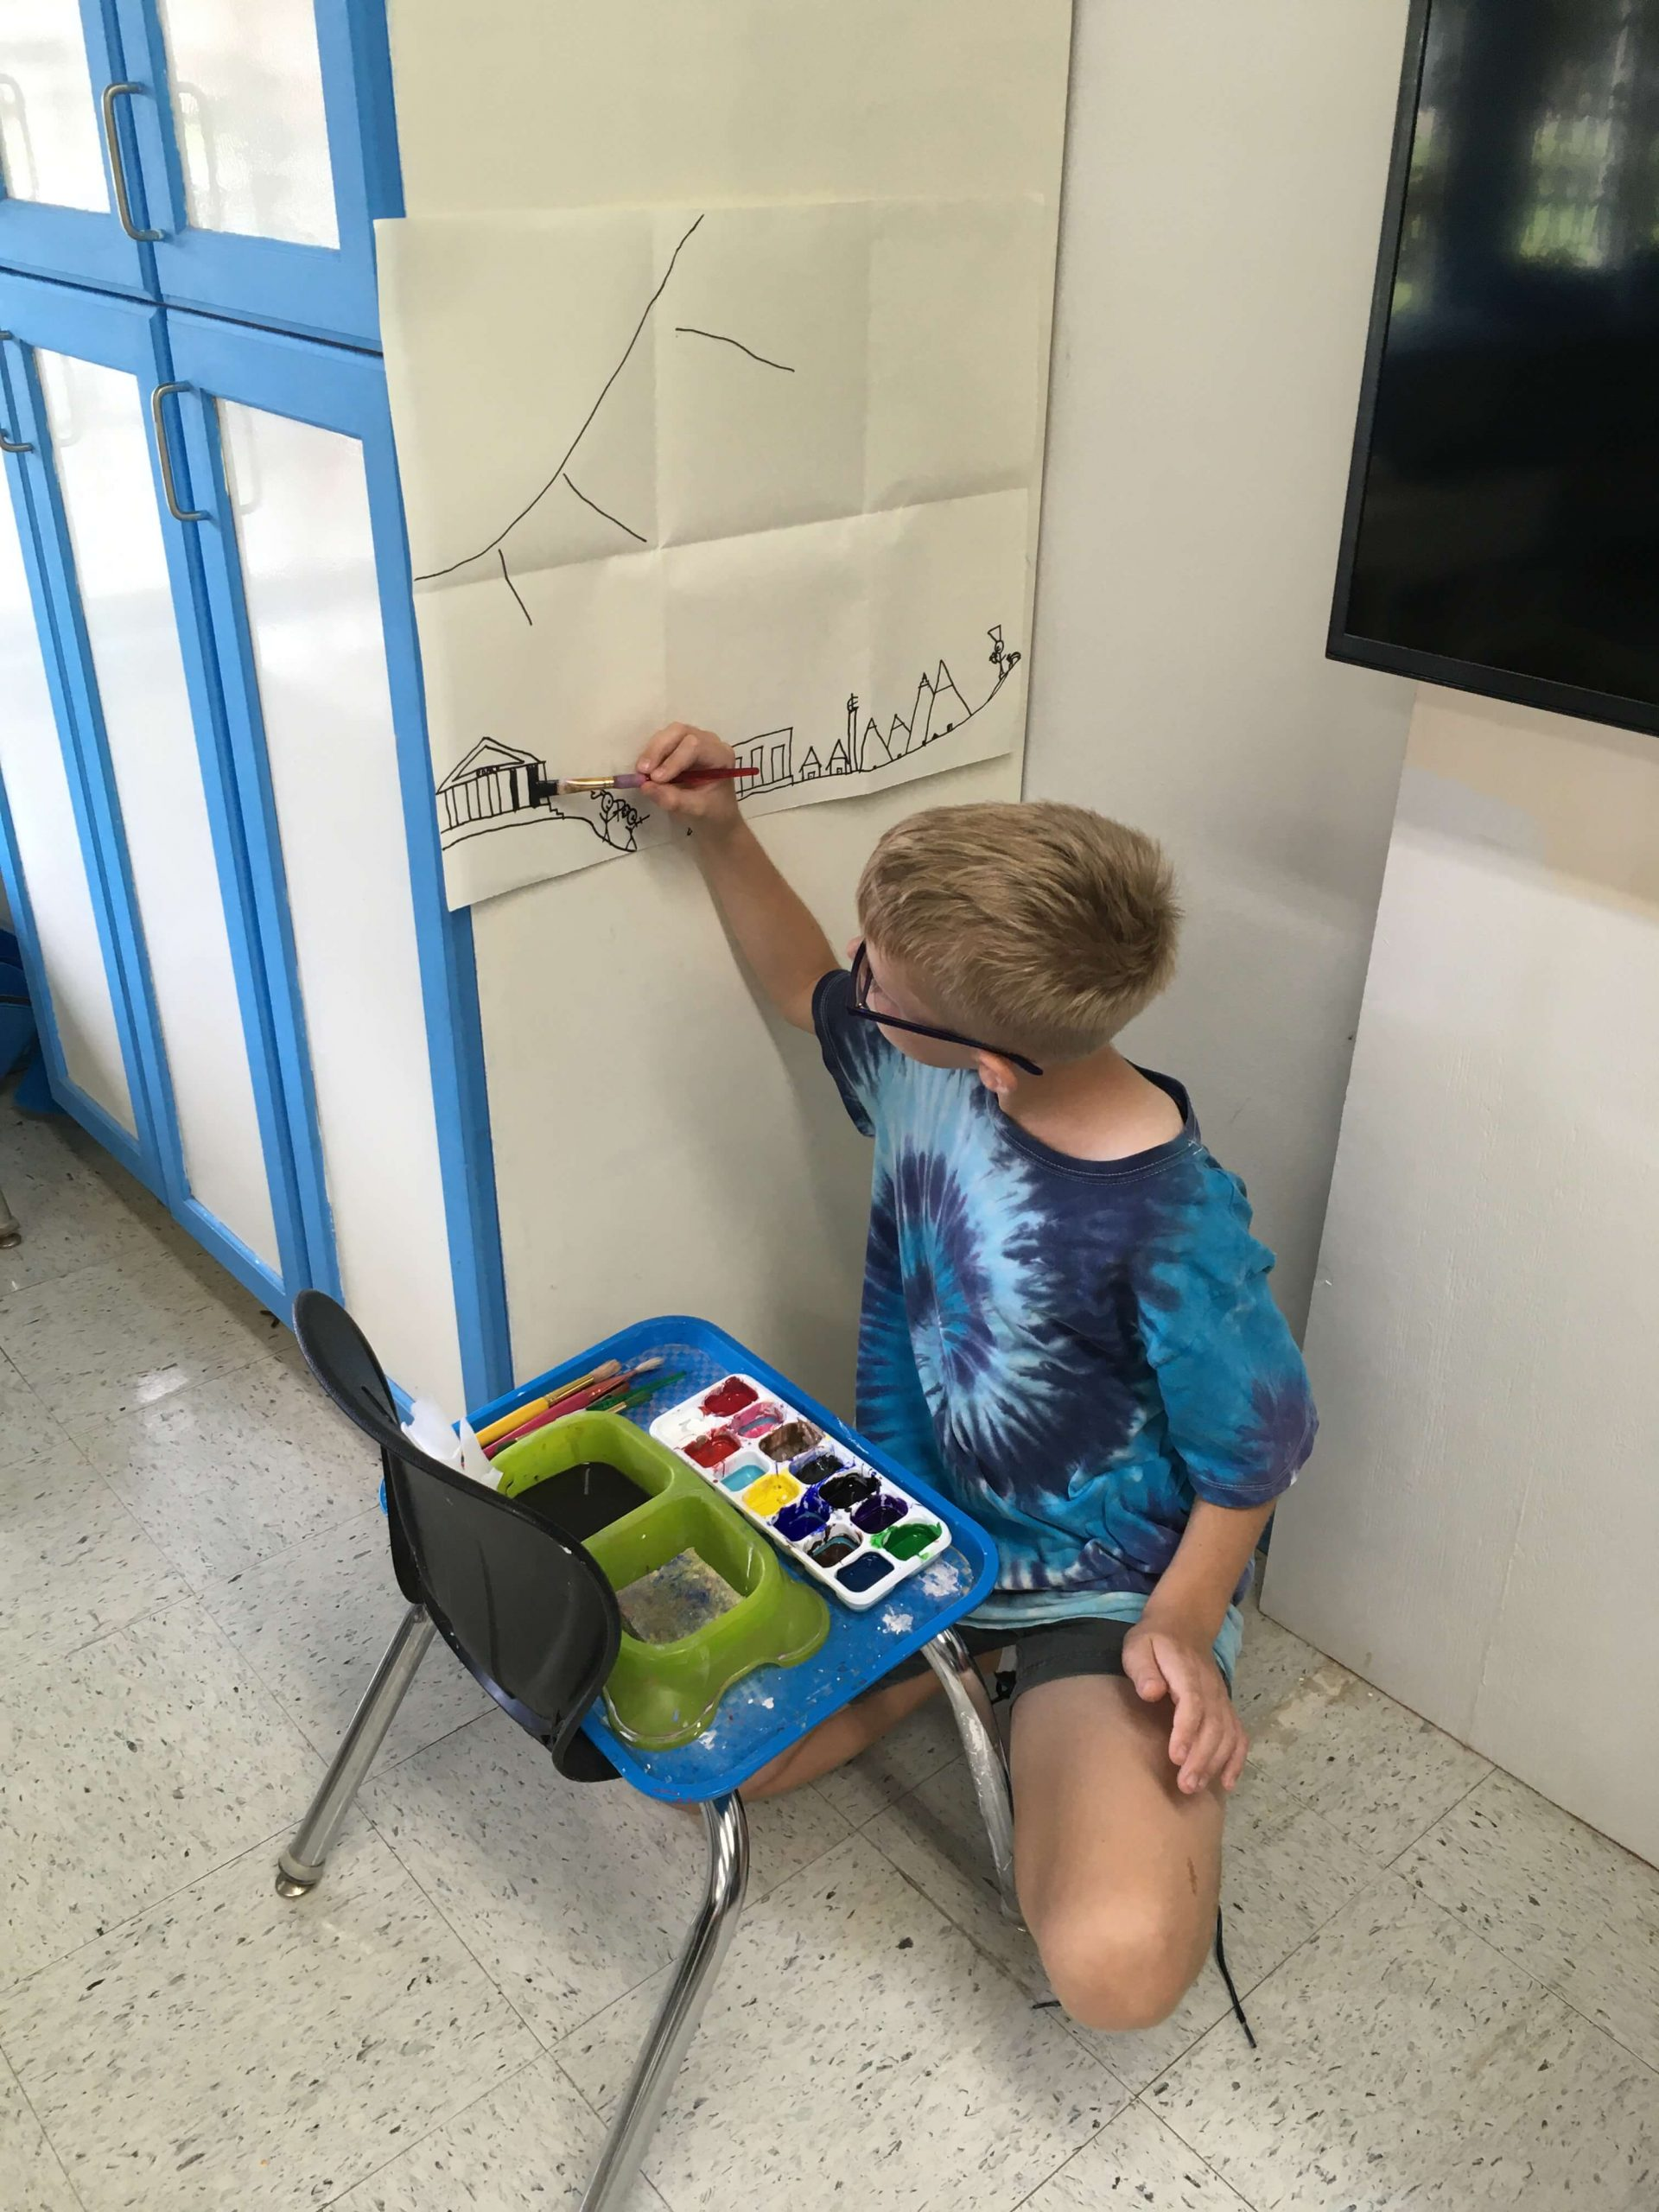 Gabe in art class working on a mural